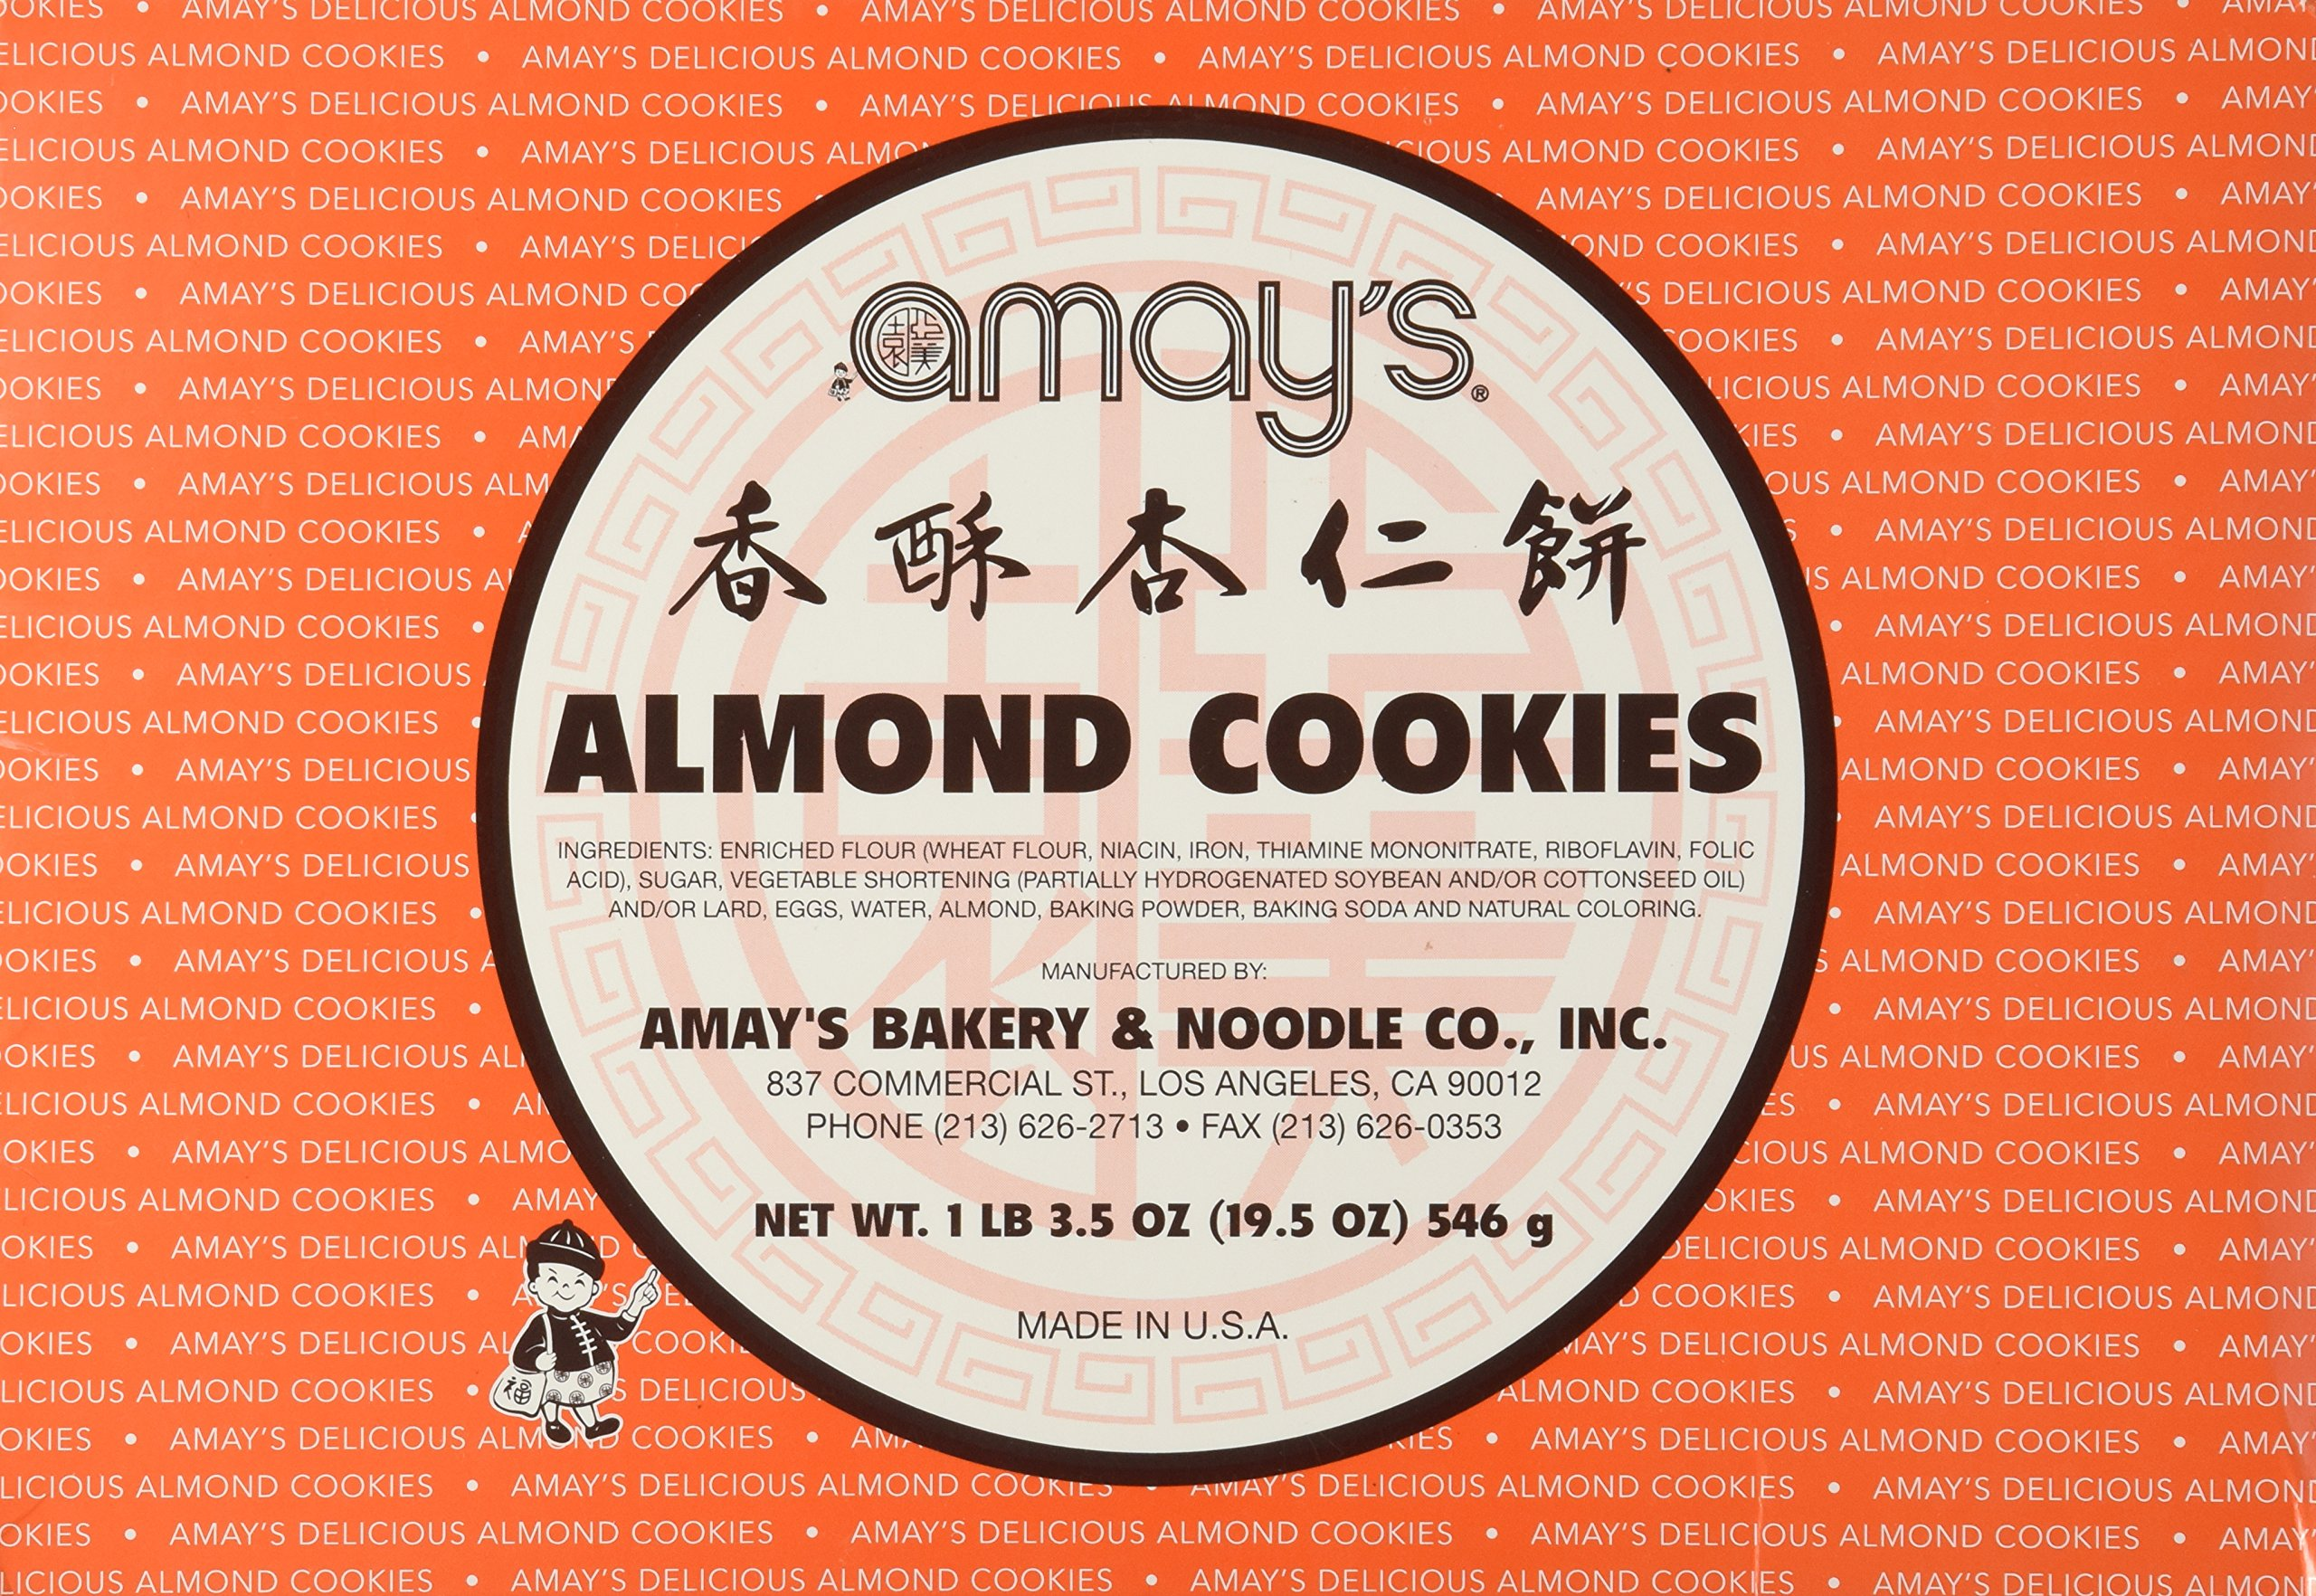 Amay's Almond Cookies 19.5z by Amay's Bakery & Noodle co.